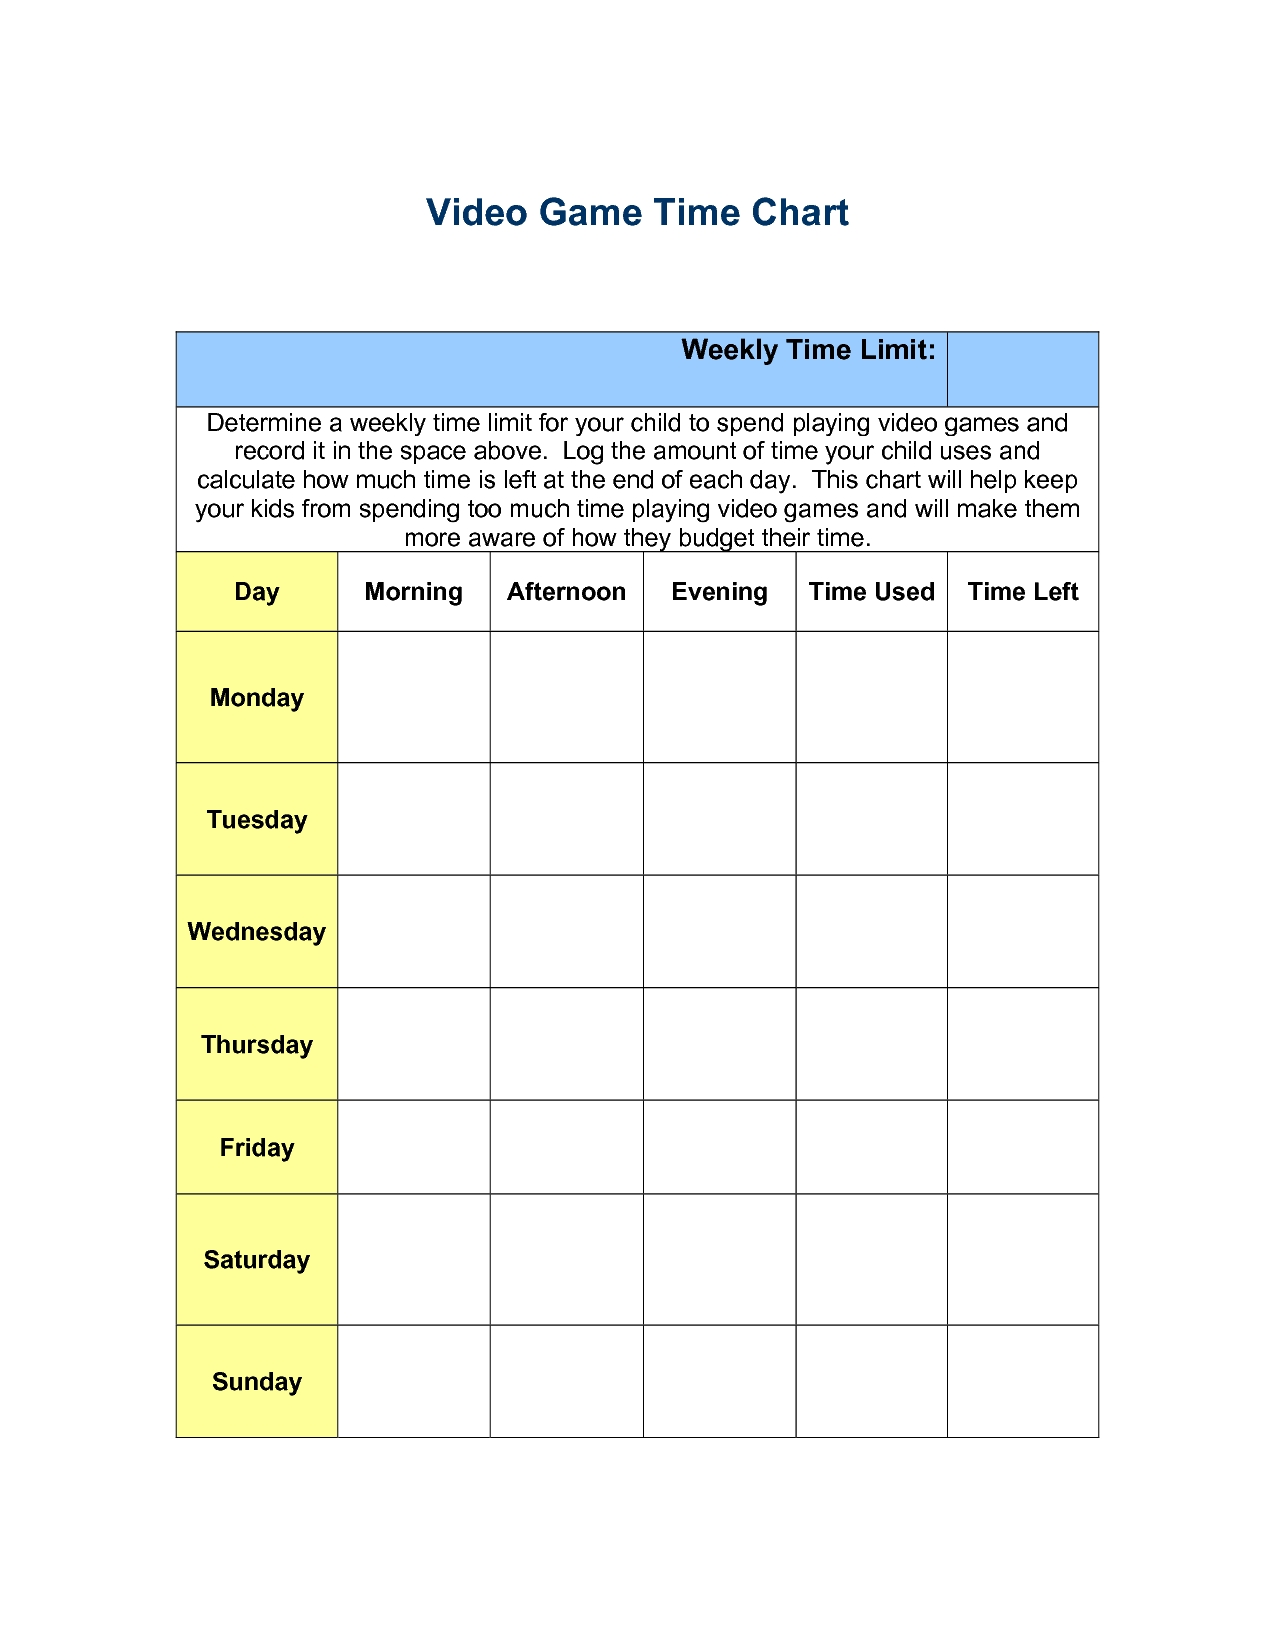 Video Game Time Chart (With Images) | Chores For Kids, Game